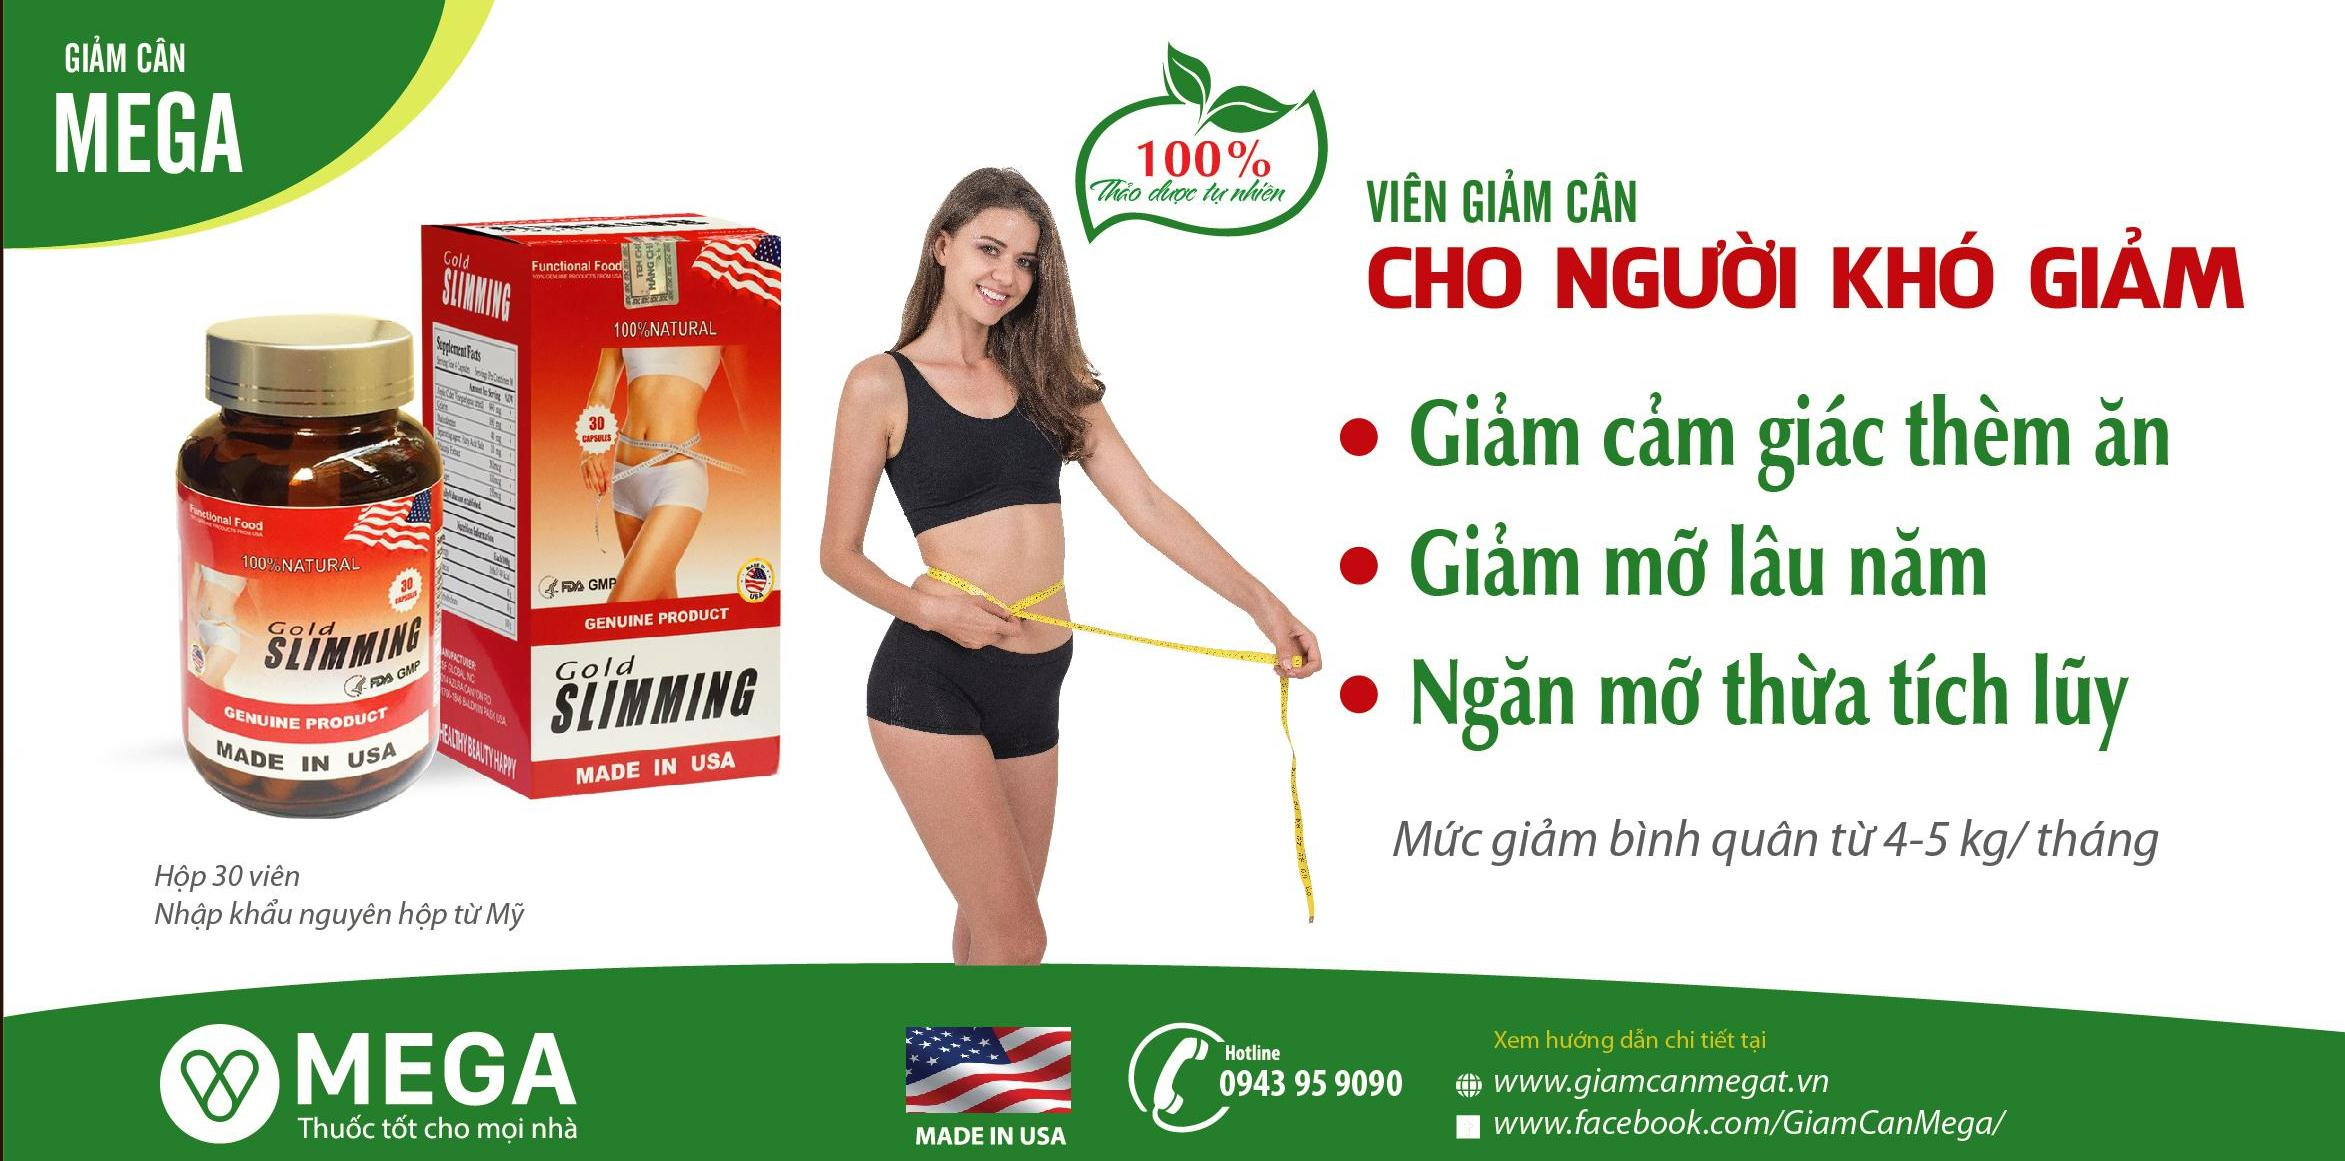 Gold Slimming mới